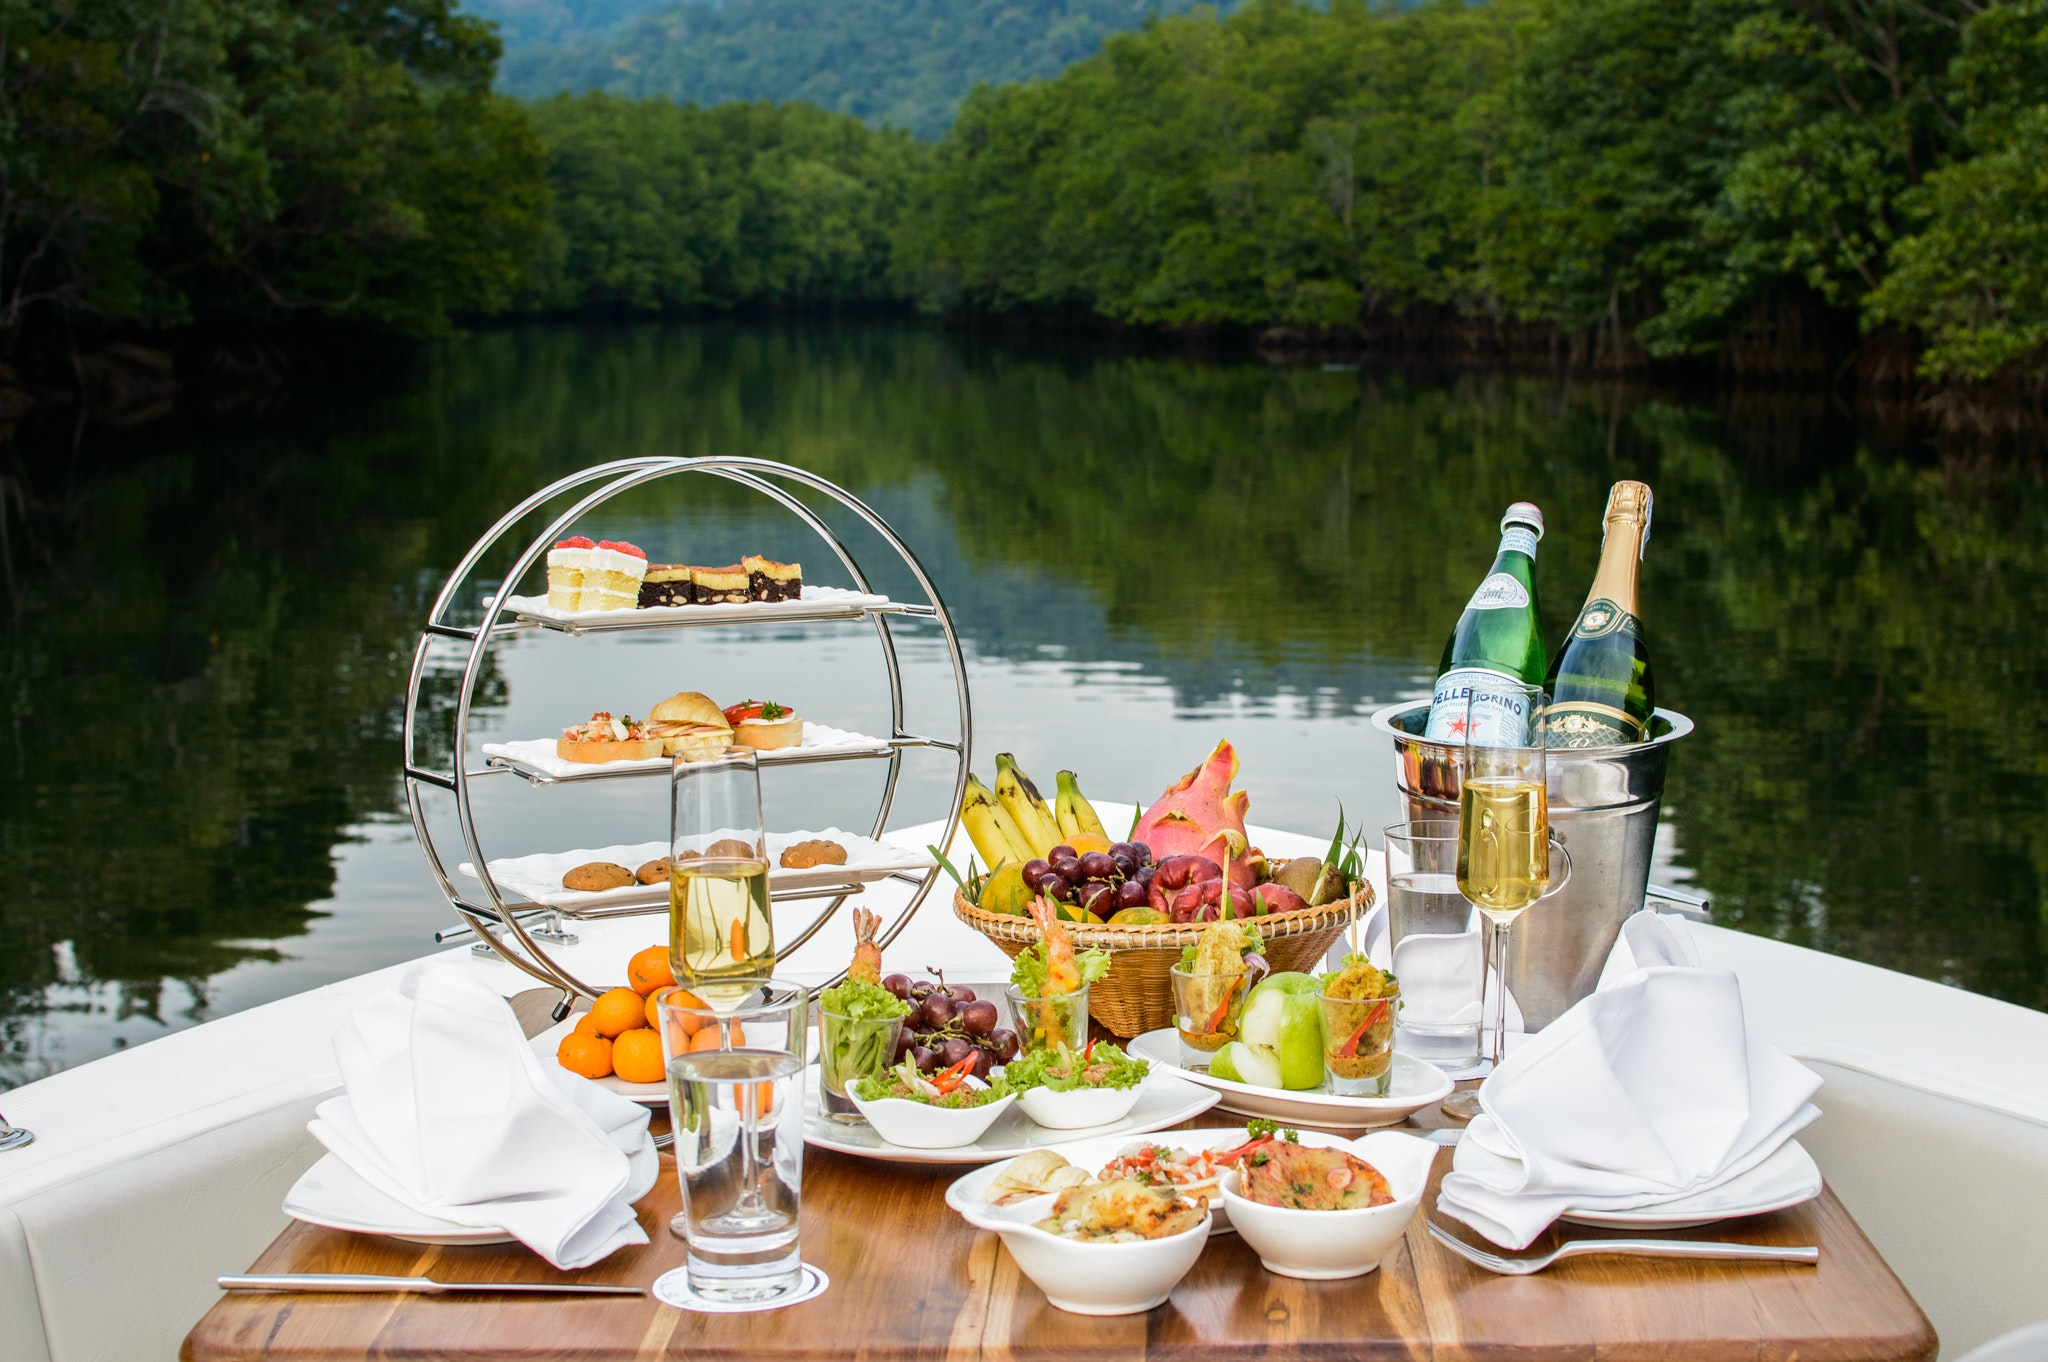 an afternoon tea set up on a boat